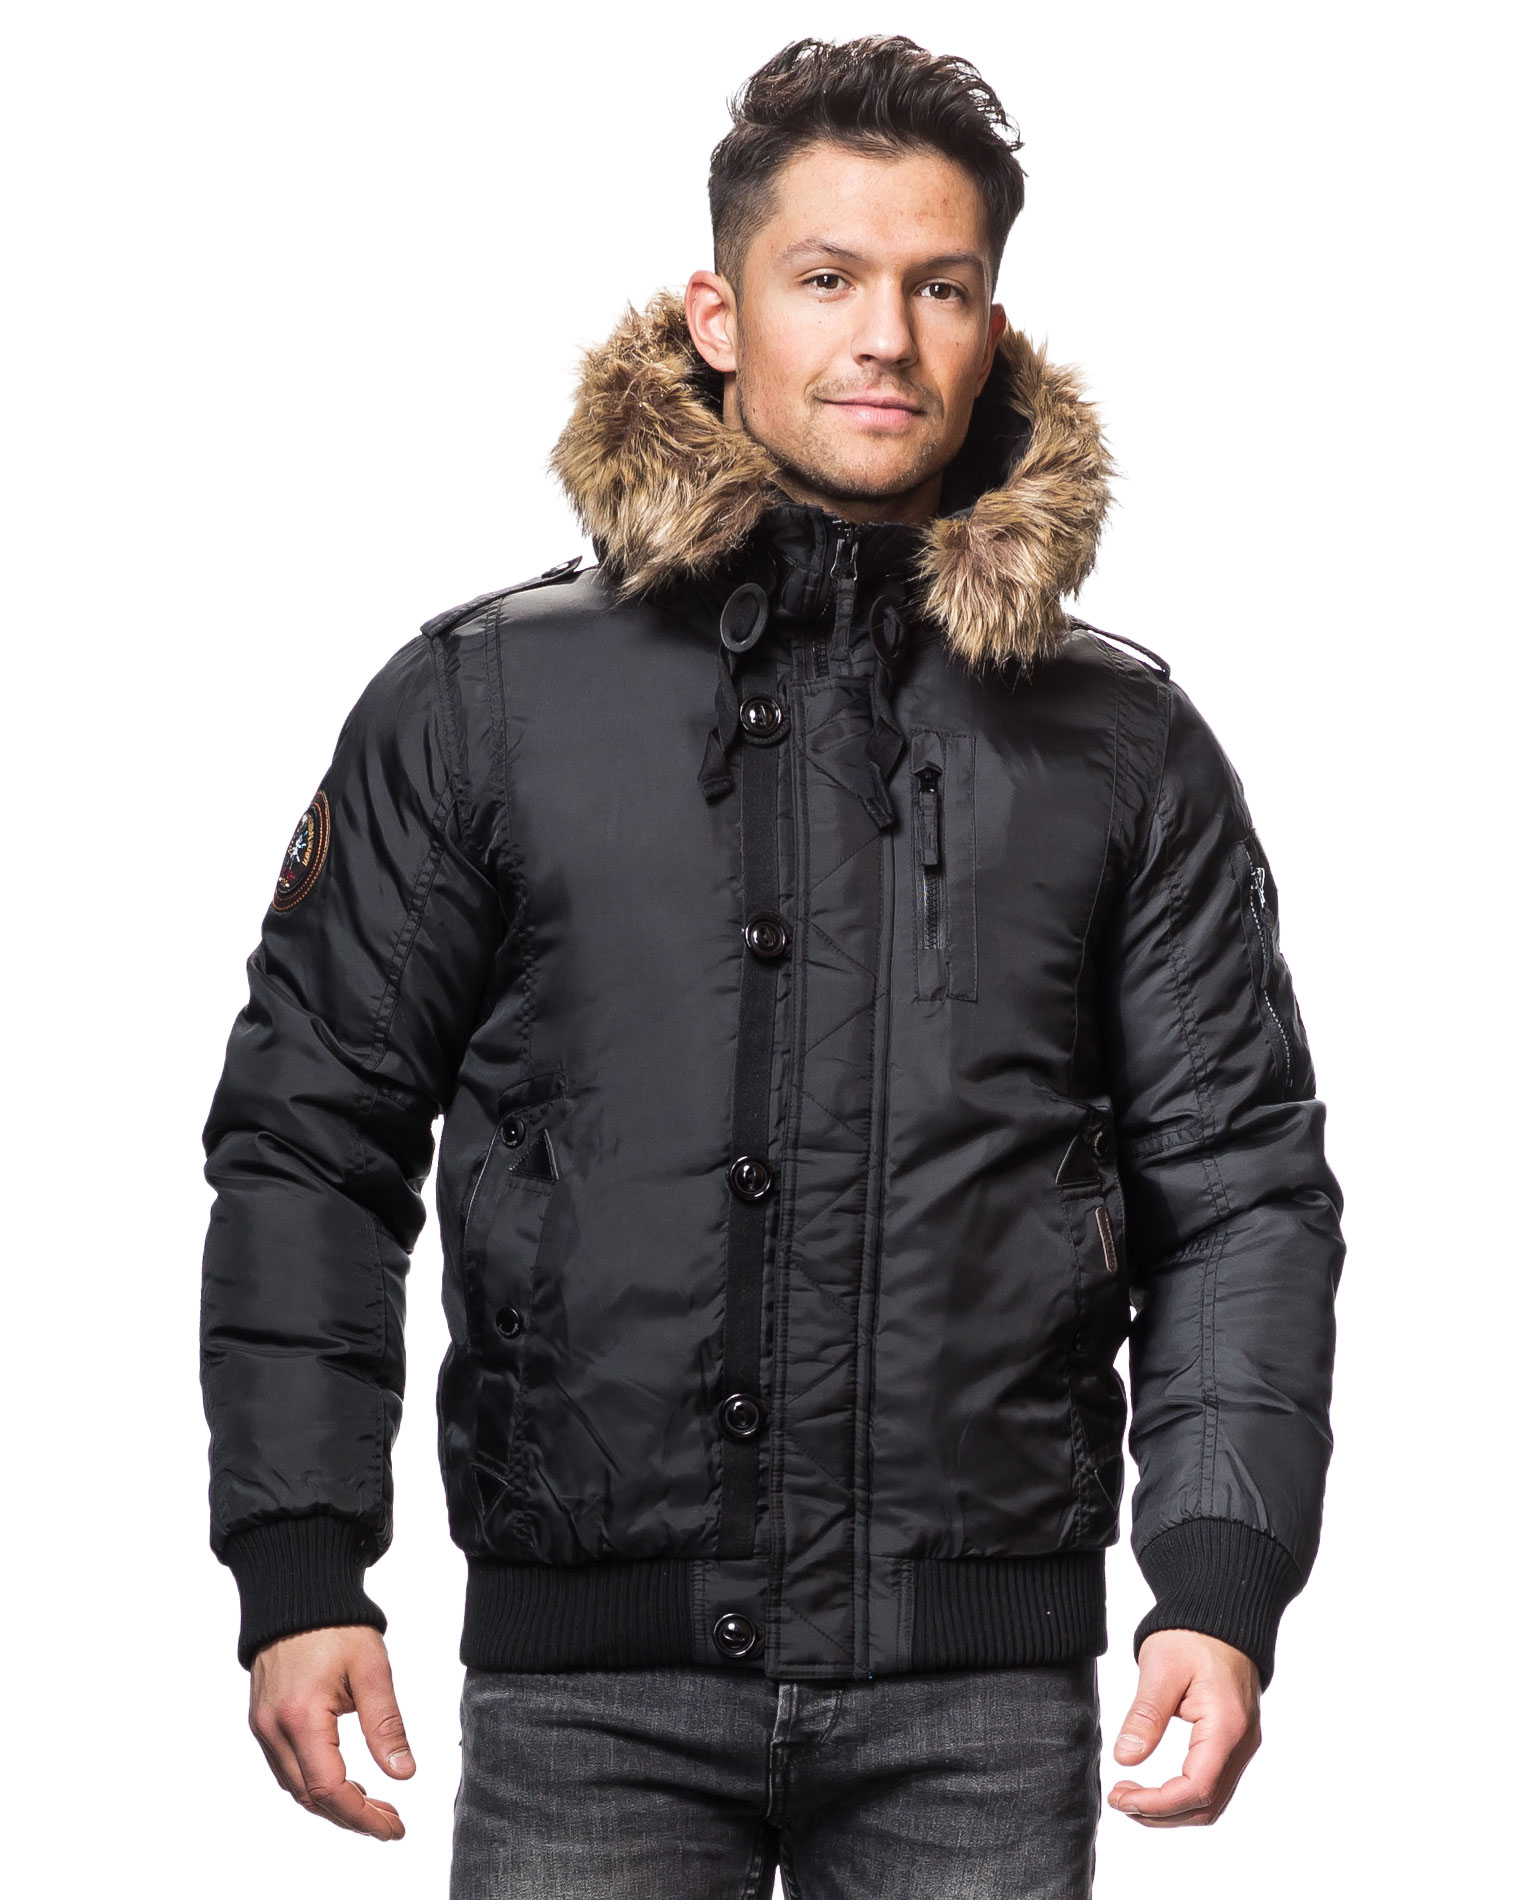 From Issue Five of Gear Patrol Magazine. Discounted domestic shipping + 15% off in the GP store for new subscribers.. Winter jackets are too often treated like umbrellas. They protect you from the elements, and nothing else. Style is secondary.